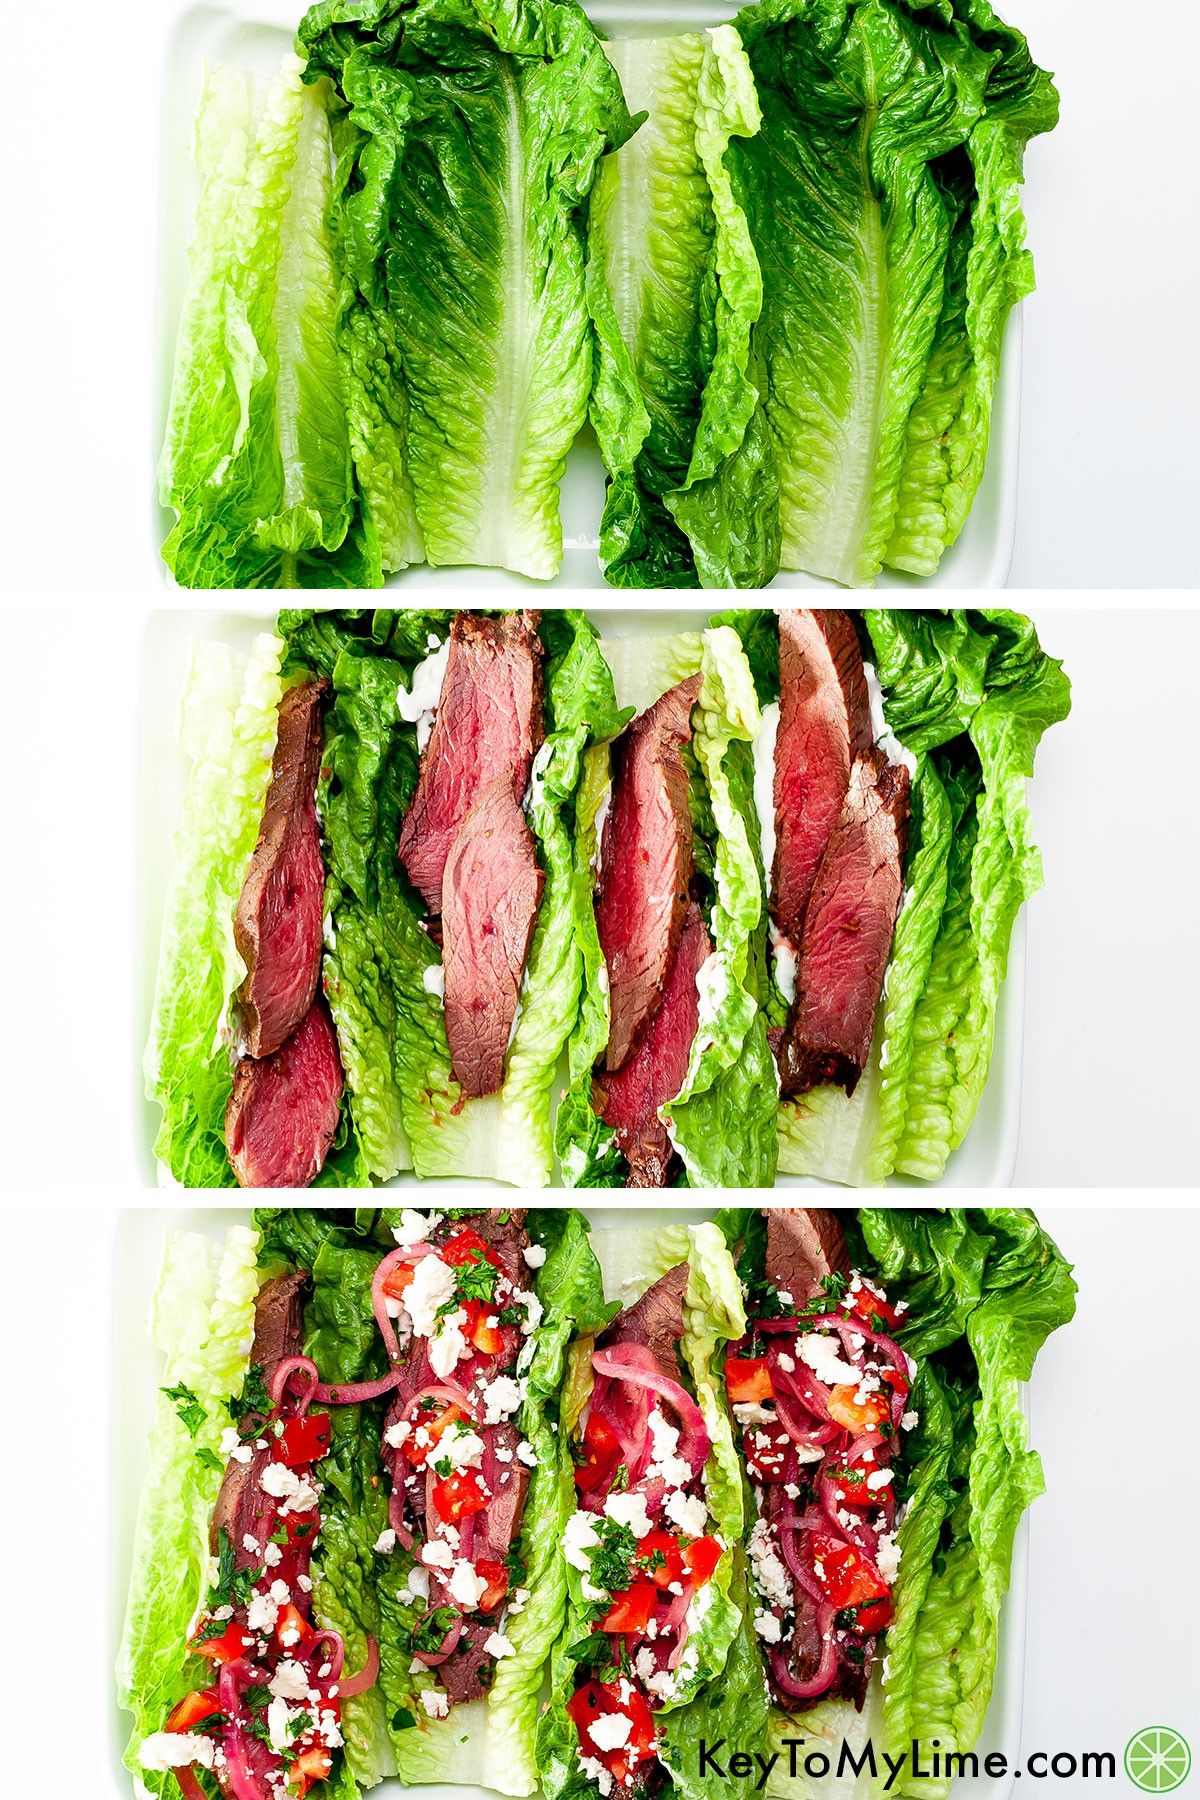 A process collage showing how to double stack the romaine leaves, add the sliced steak, then add the other toppings.